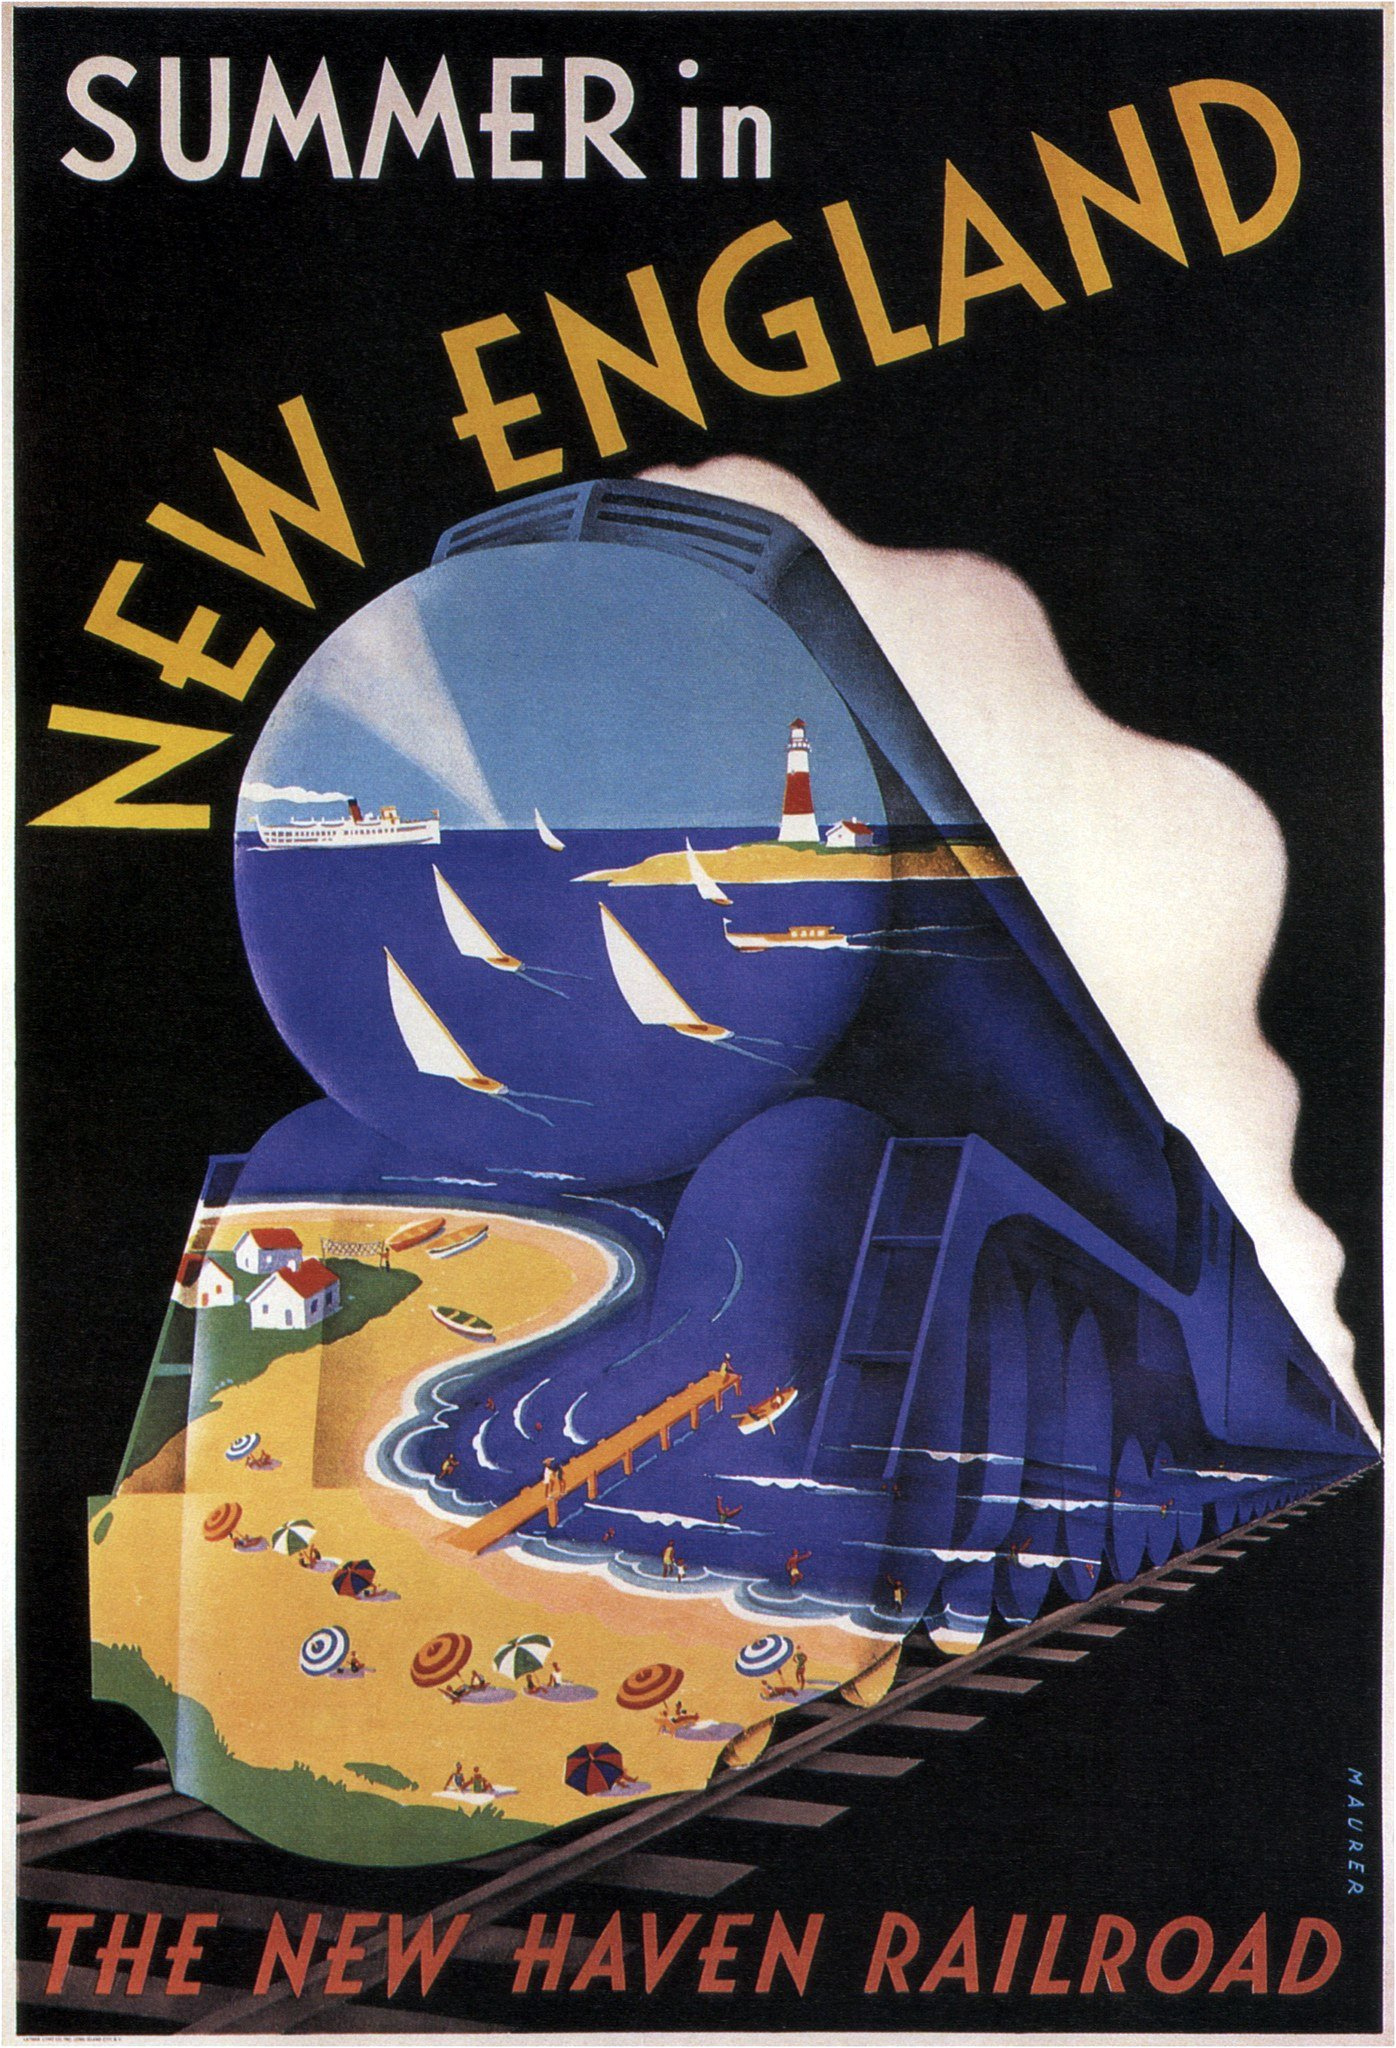 New York, New Haven and Hartford Railroad - artwork by Sascha Maurer - 1938